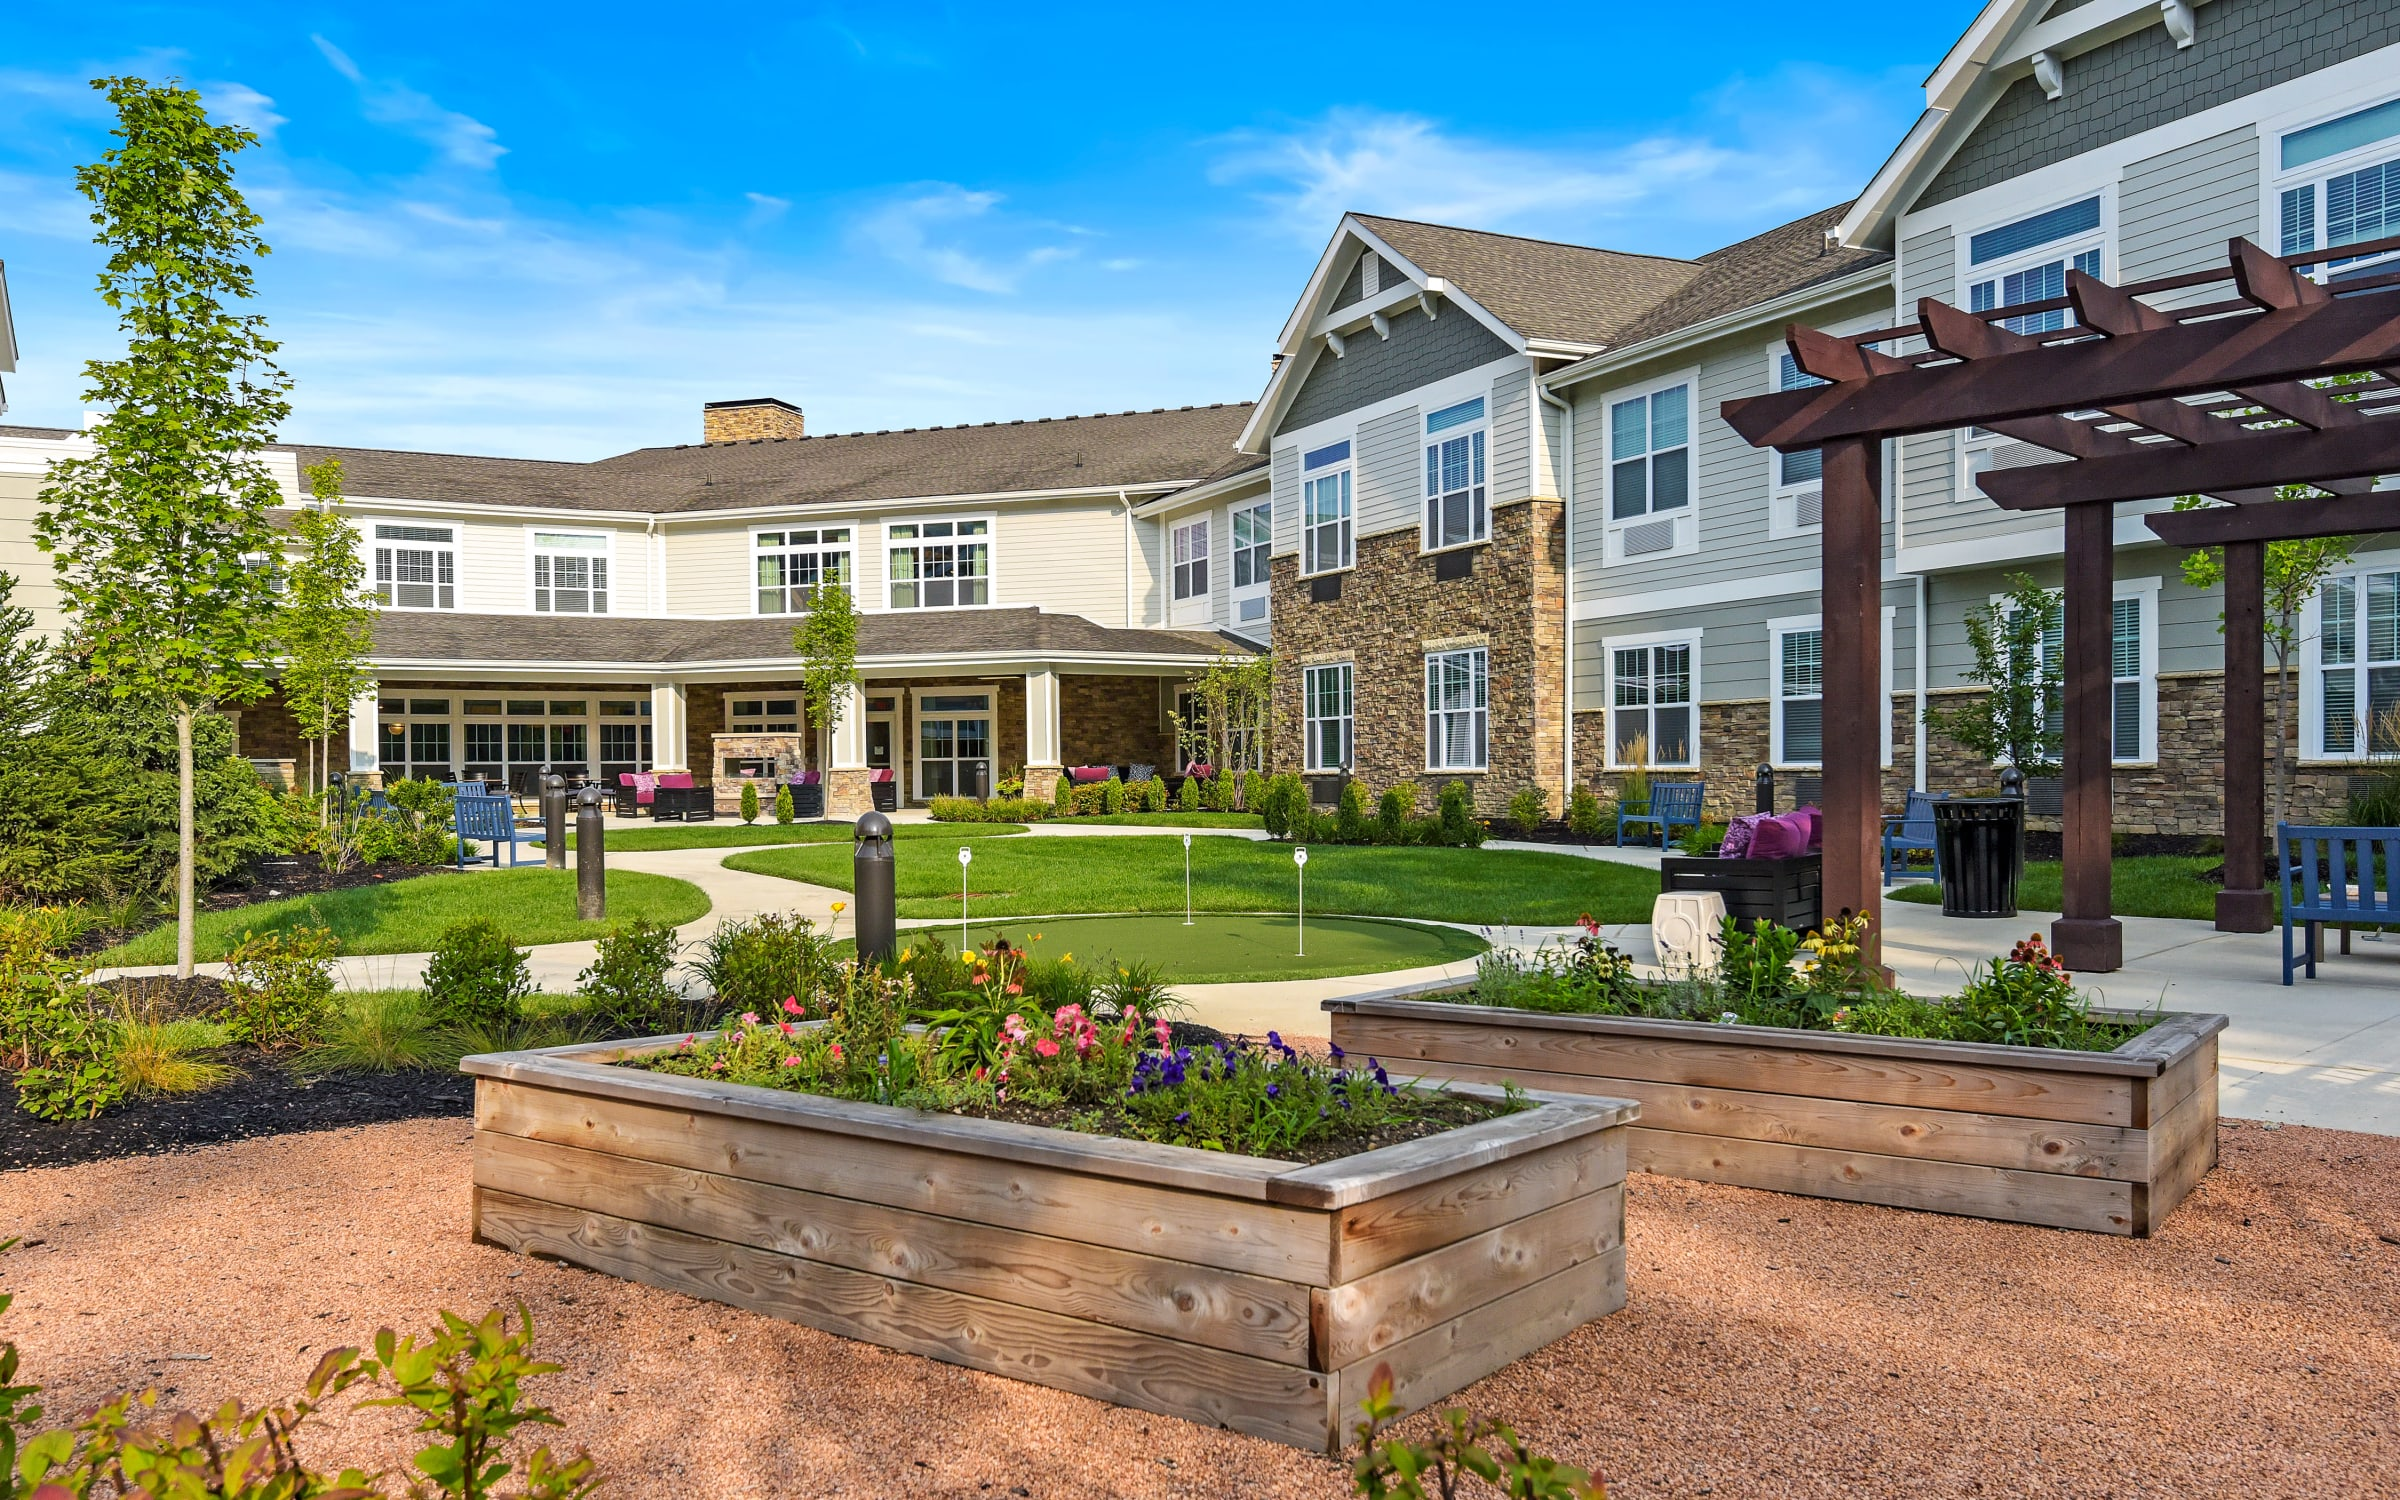 Photo gallery at Anthology of Meridian Hills in Indianapolis, Indiana